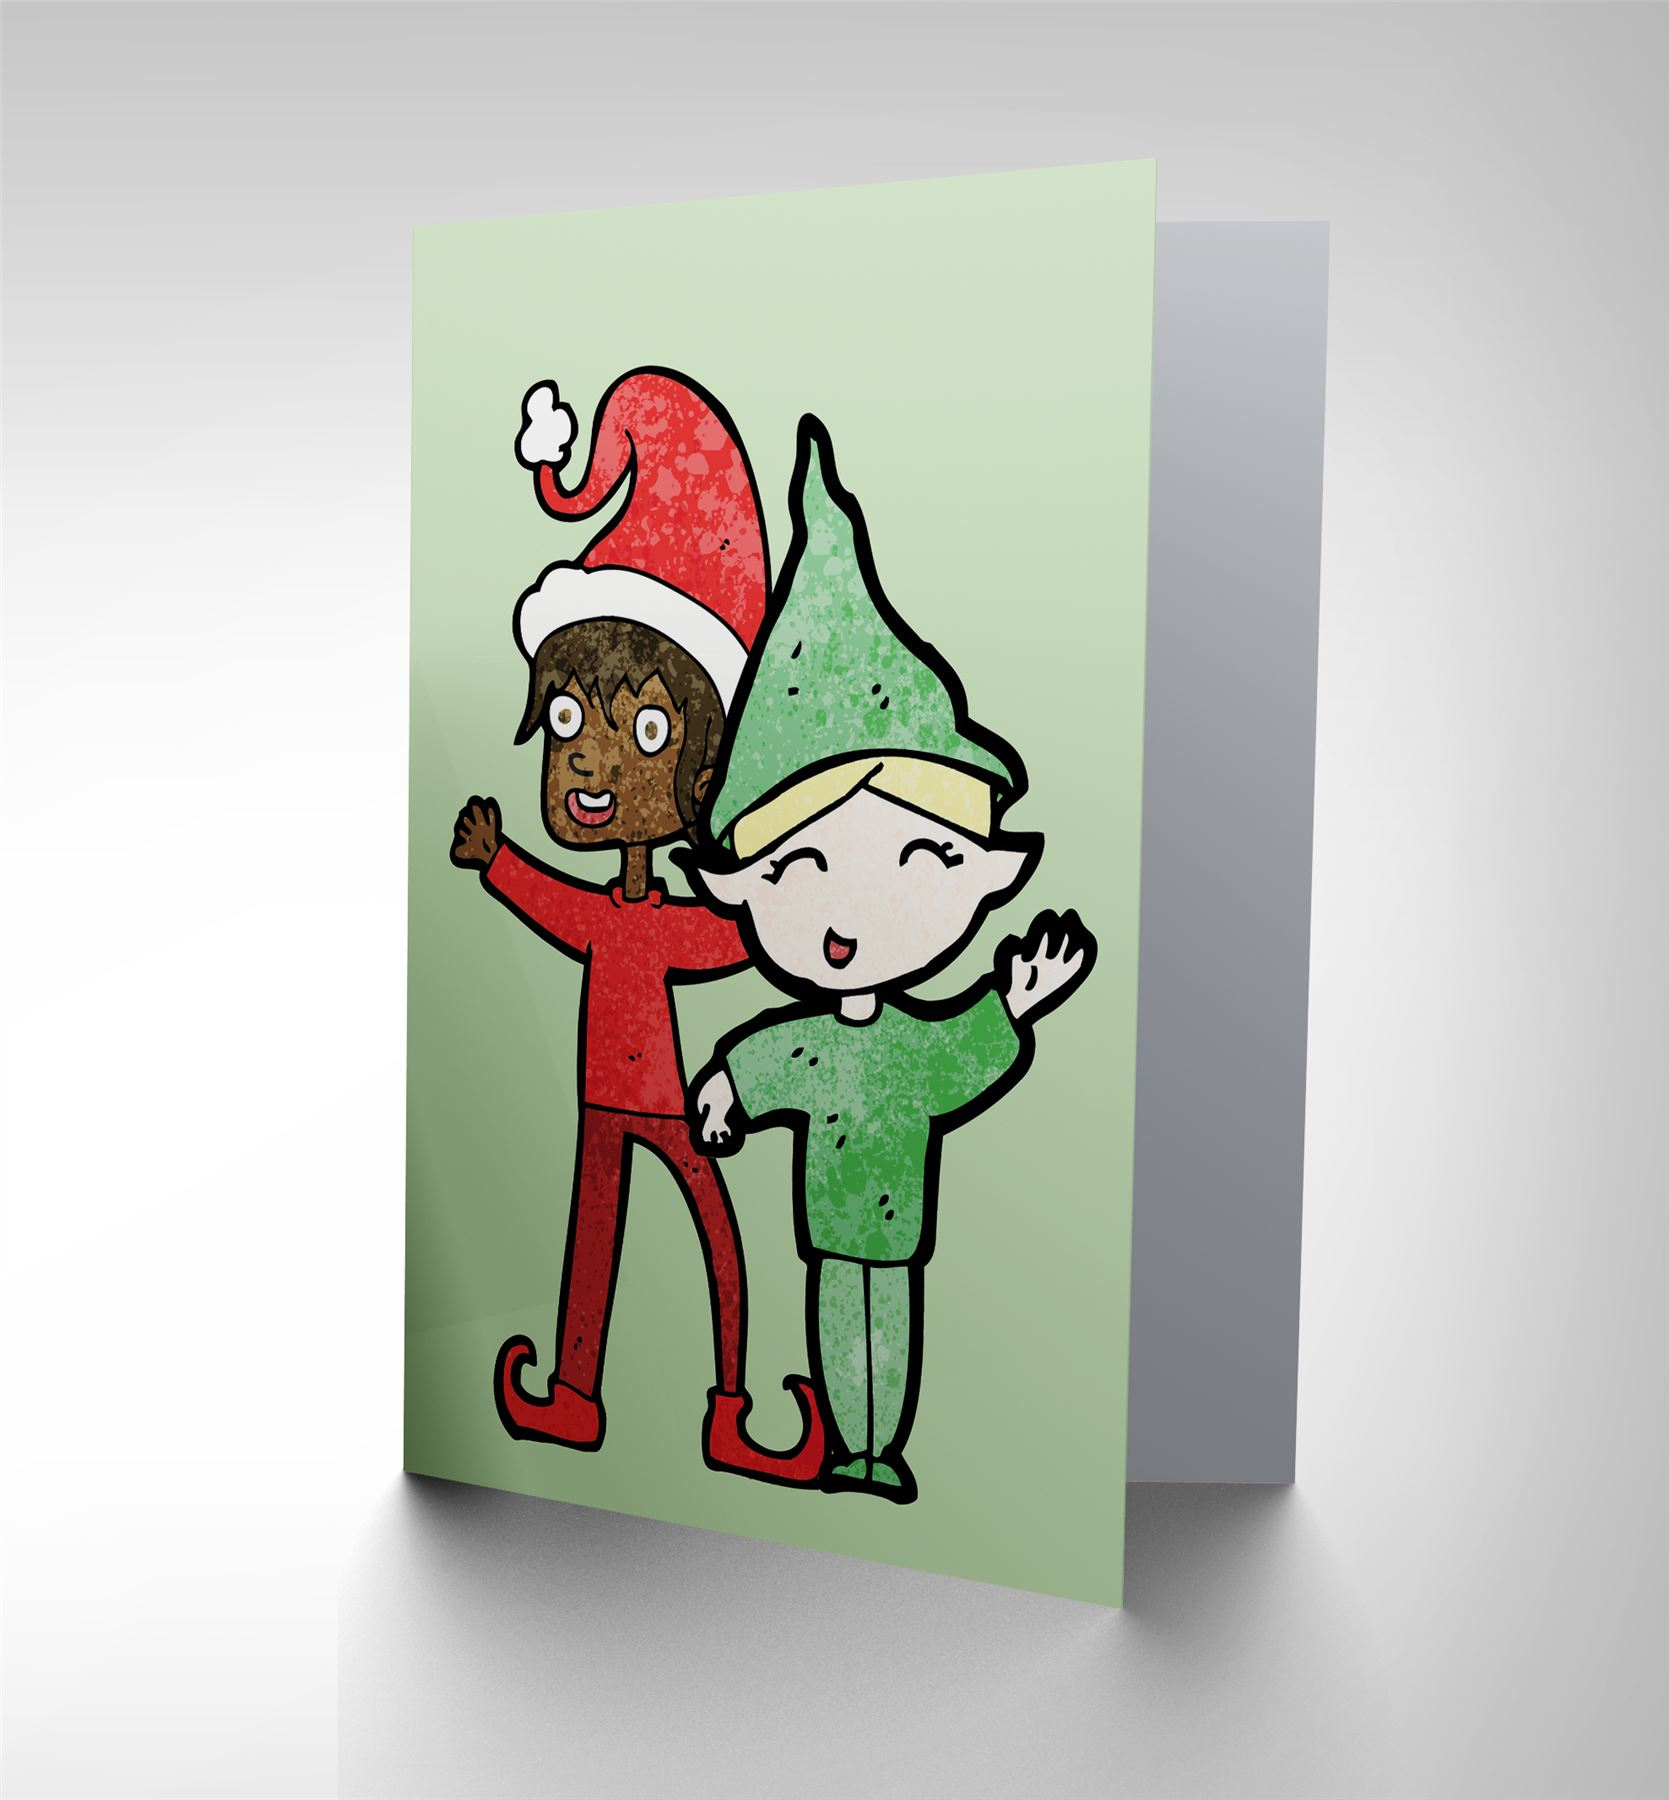 picture 1 of 3 - Elf Christmas Card